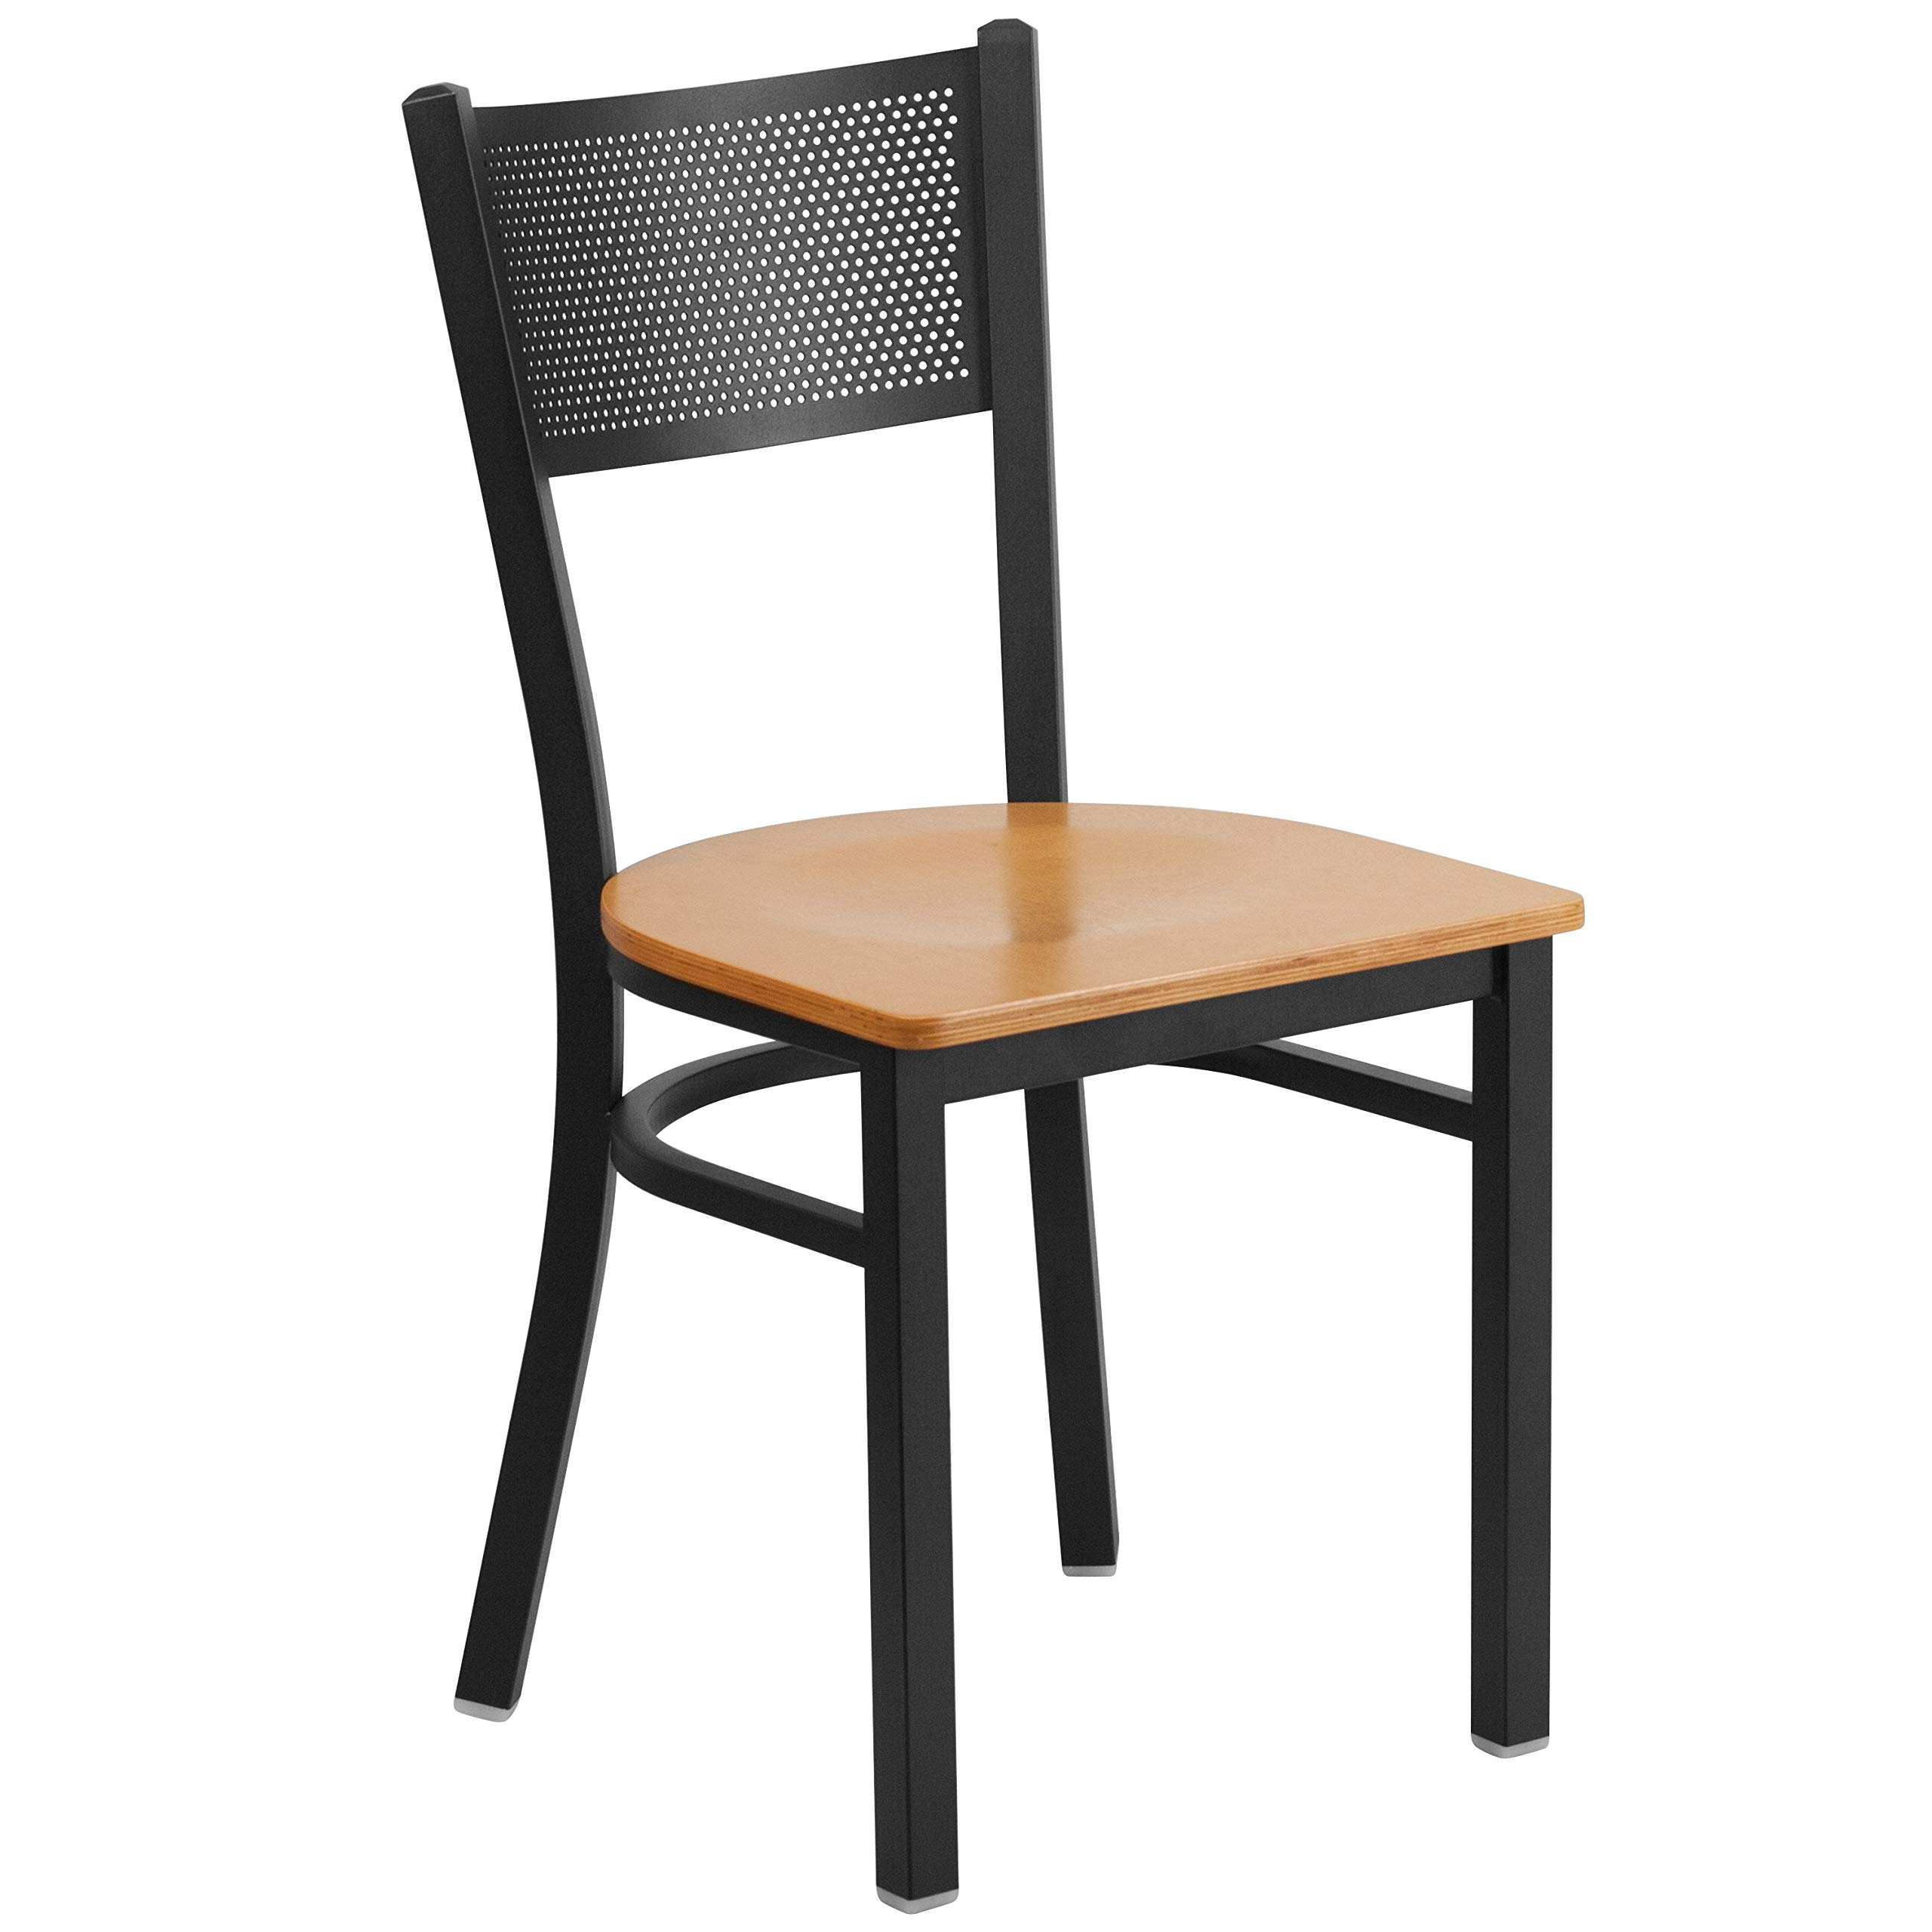 MFO Princeton Collection Black Grid Back Metal Restaurant Chair - Natural Wood Seat